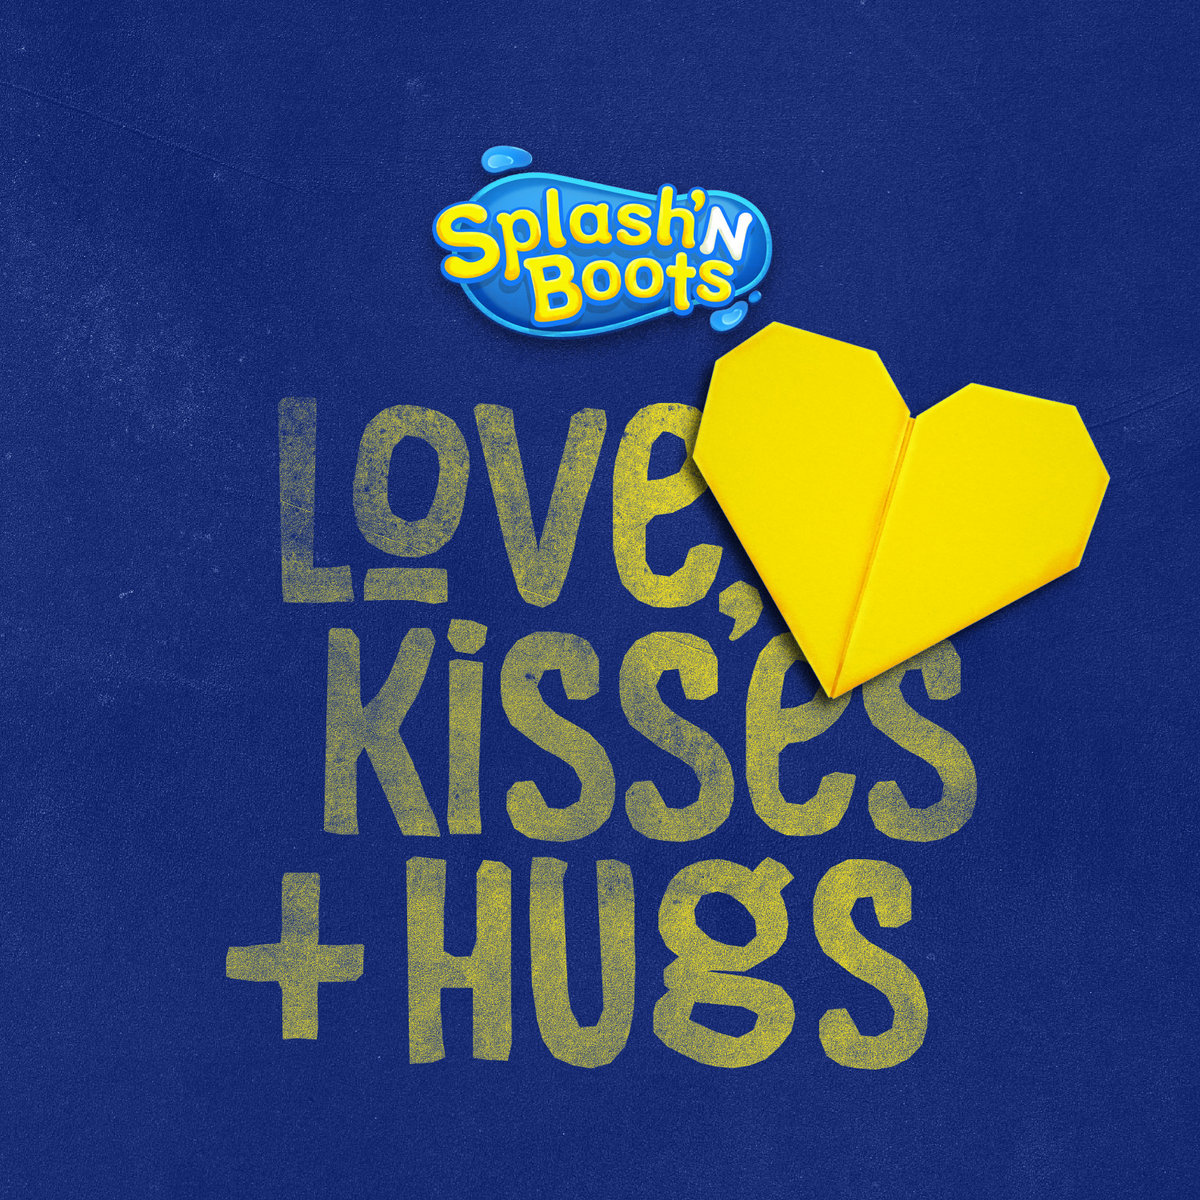 Love Kisses And Hugs Splashn Boots